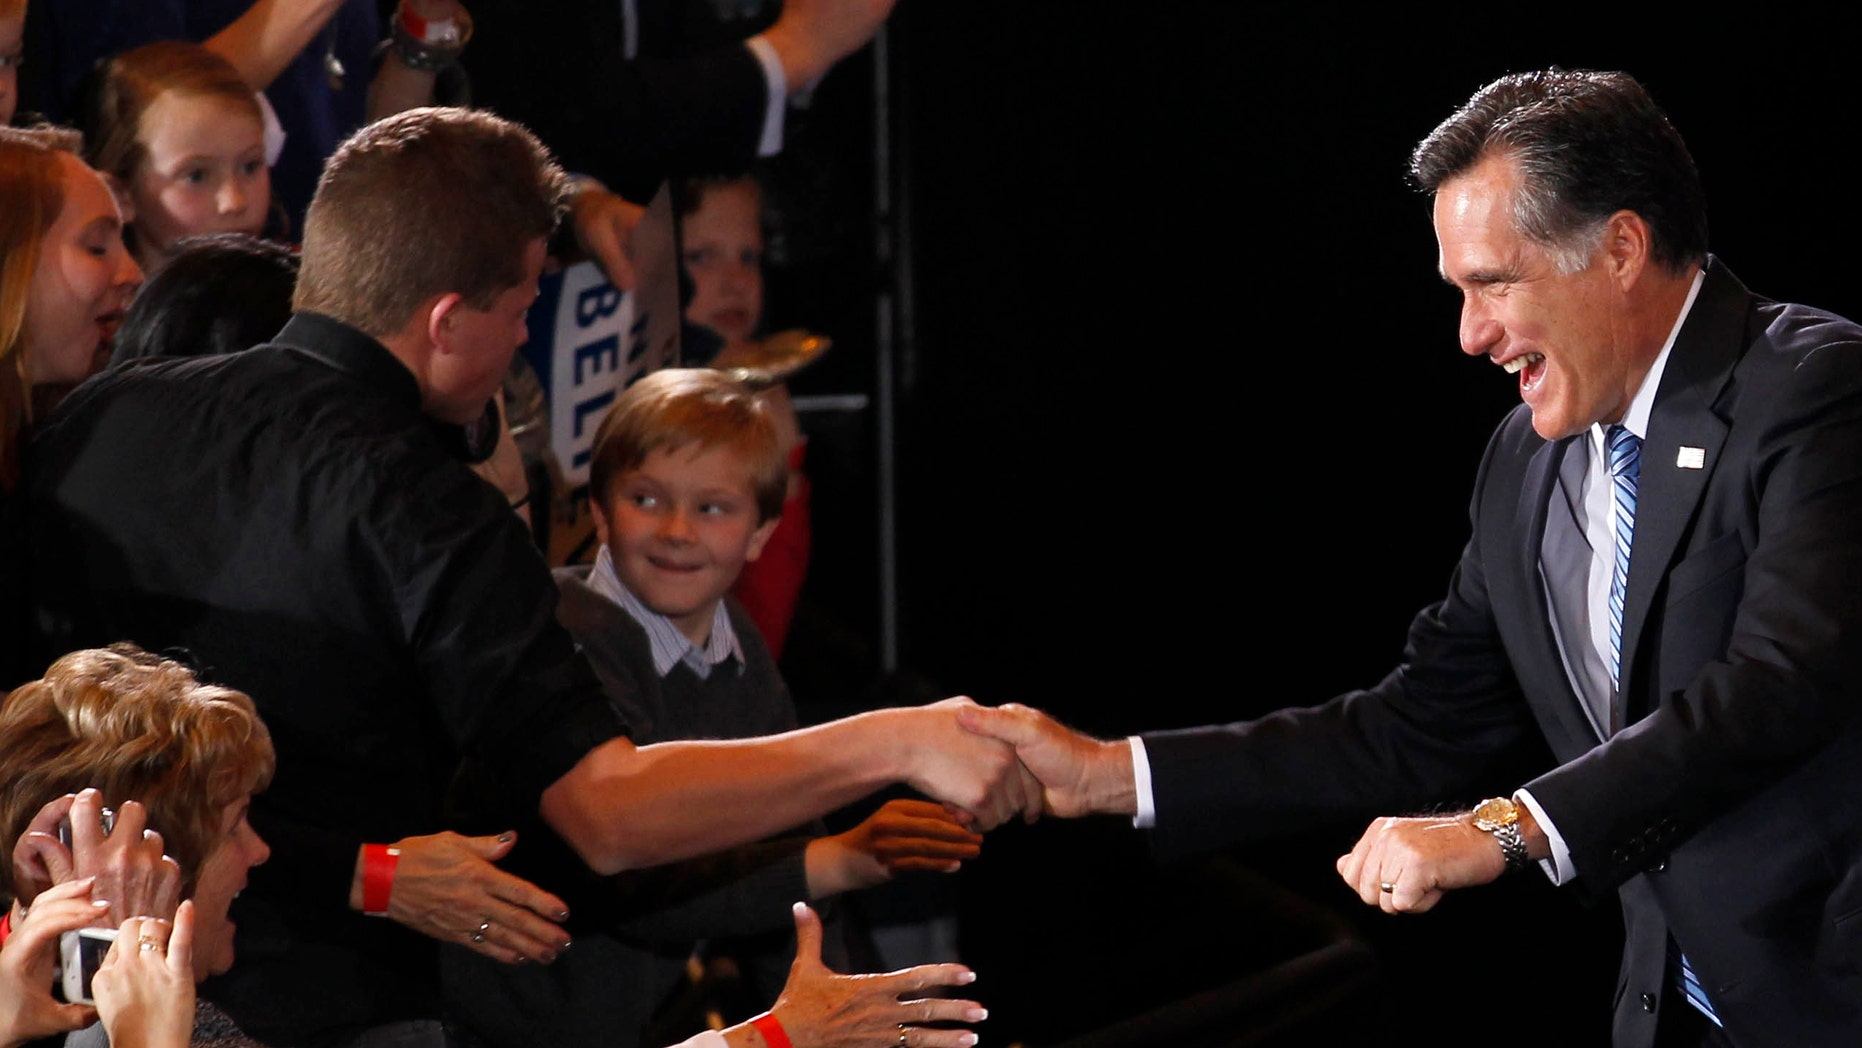 Republican presidential candidate former Massachusetts Gov. Mitt Romney greets supporters at his Nevada caucus night victory celebration in Las Vegas, Saturday, Feb. 4, 2012. (AP Photo/Gerald Herbert)